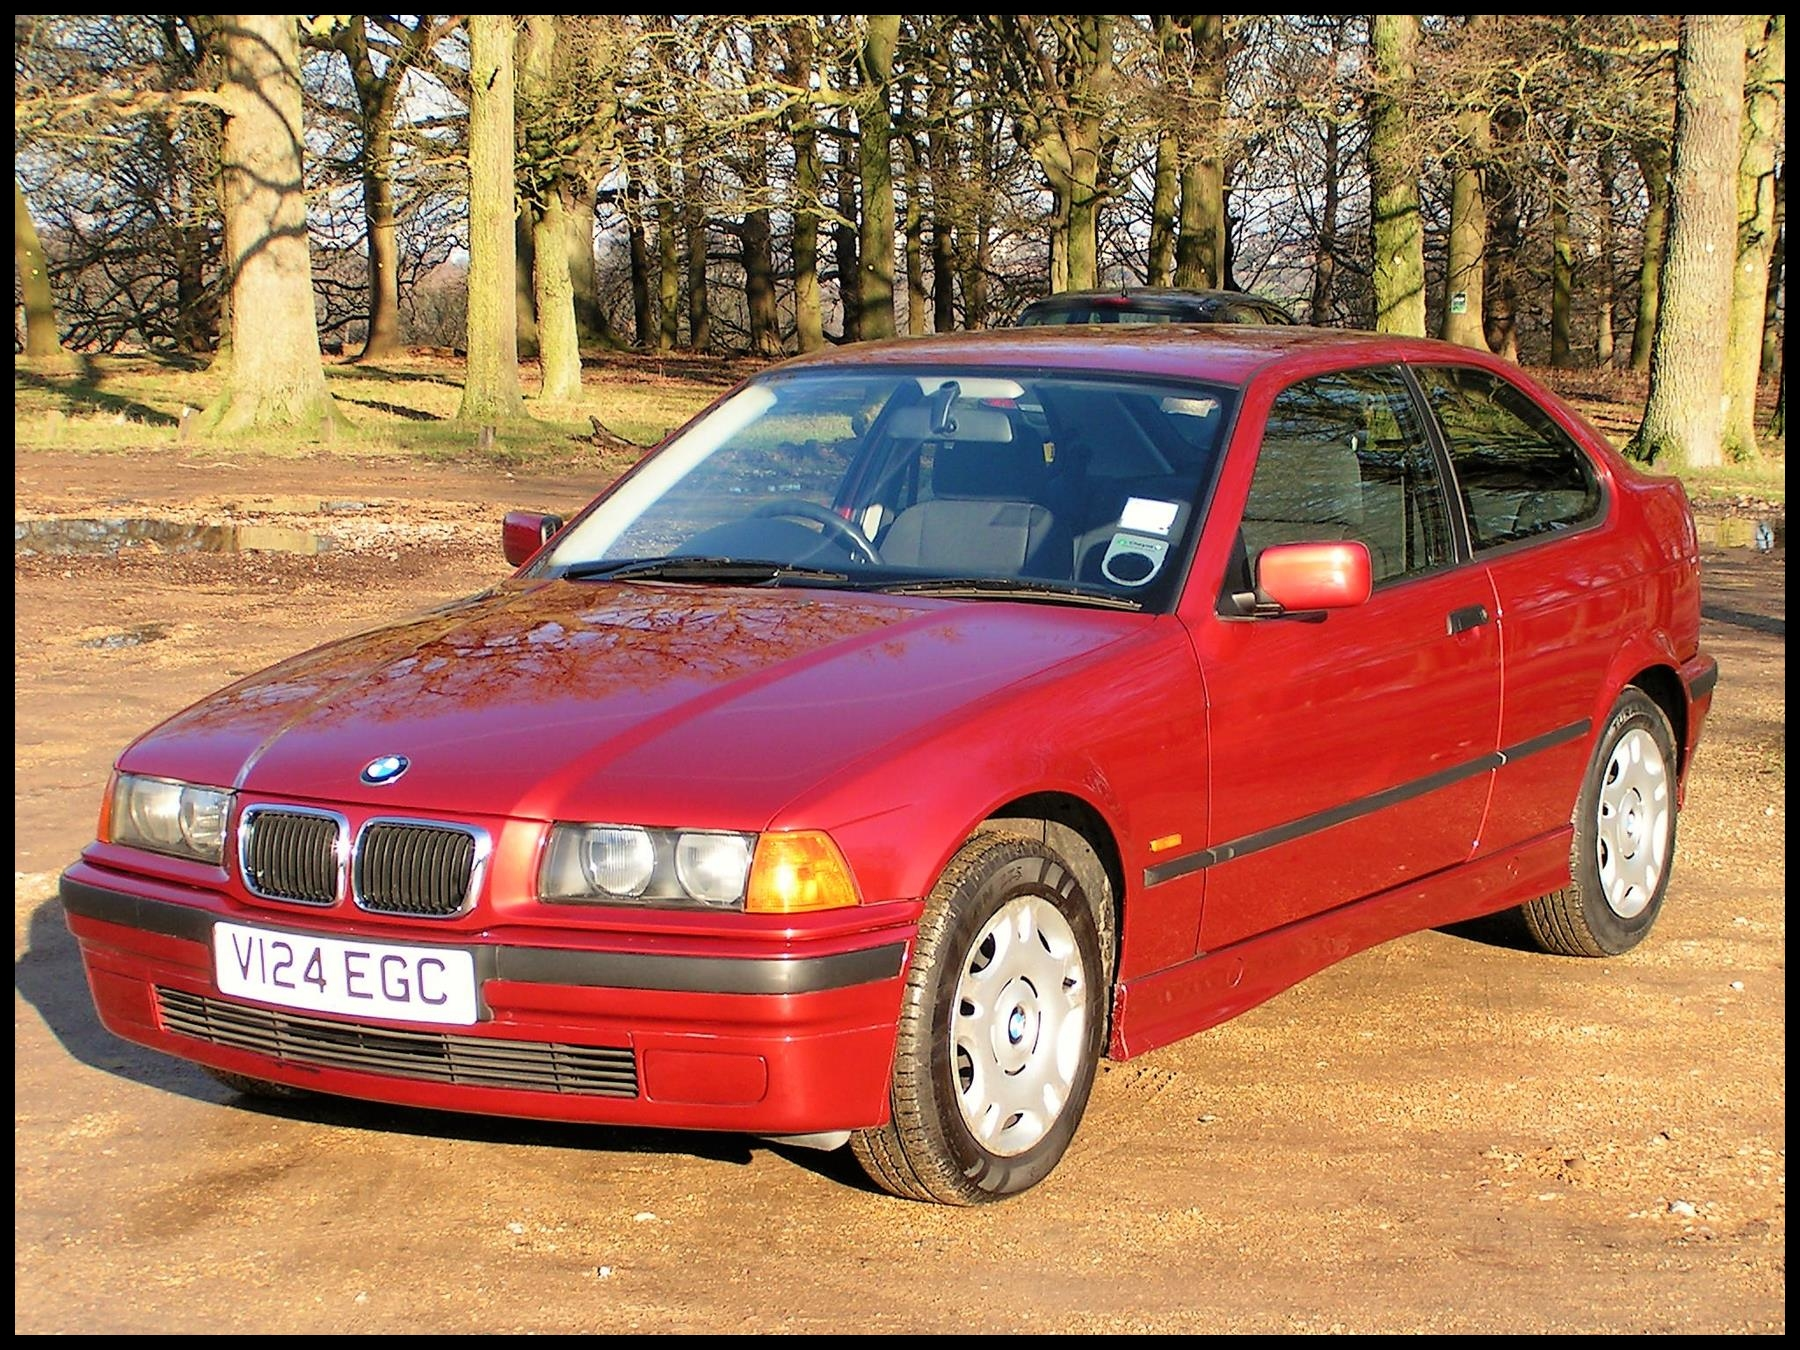 BMW 316I PACT 1 9 AUTOMATIC ONE LADY OWNER GENUINE MILES OUTSTANDING CONDITION THROUGHOUT AIR CON PARKING SENSORS 1999